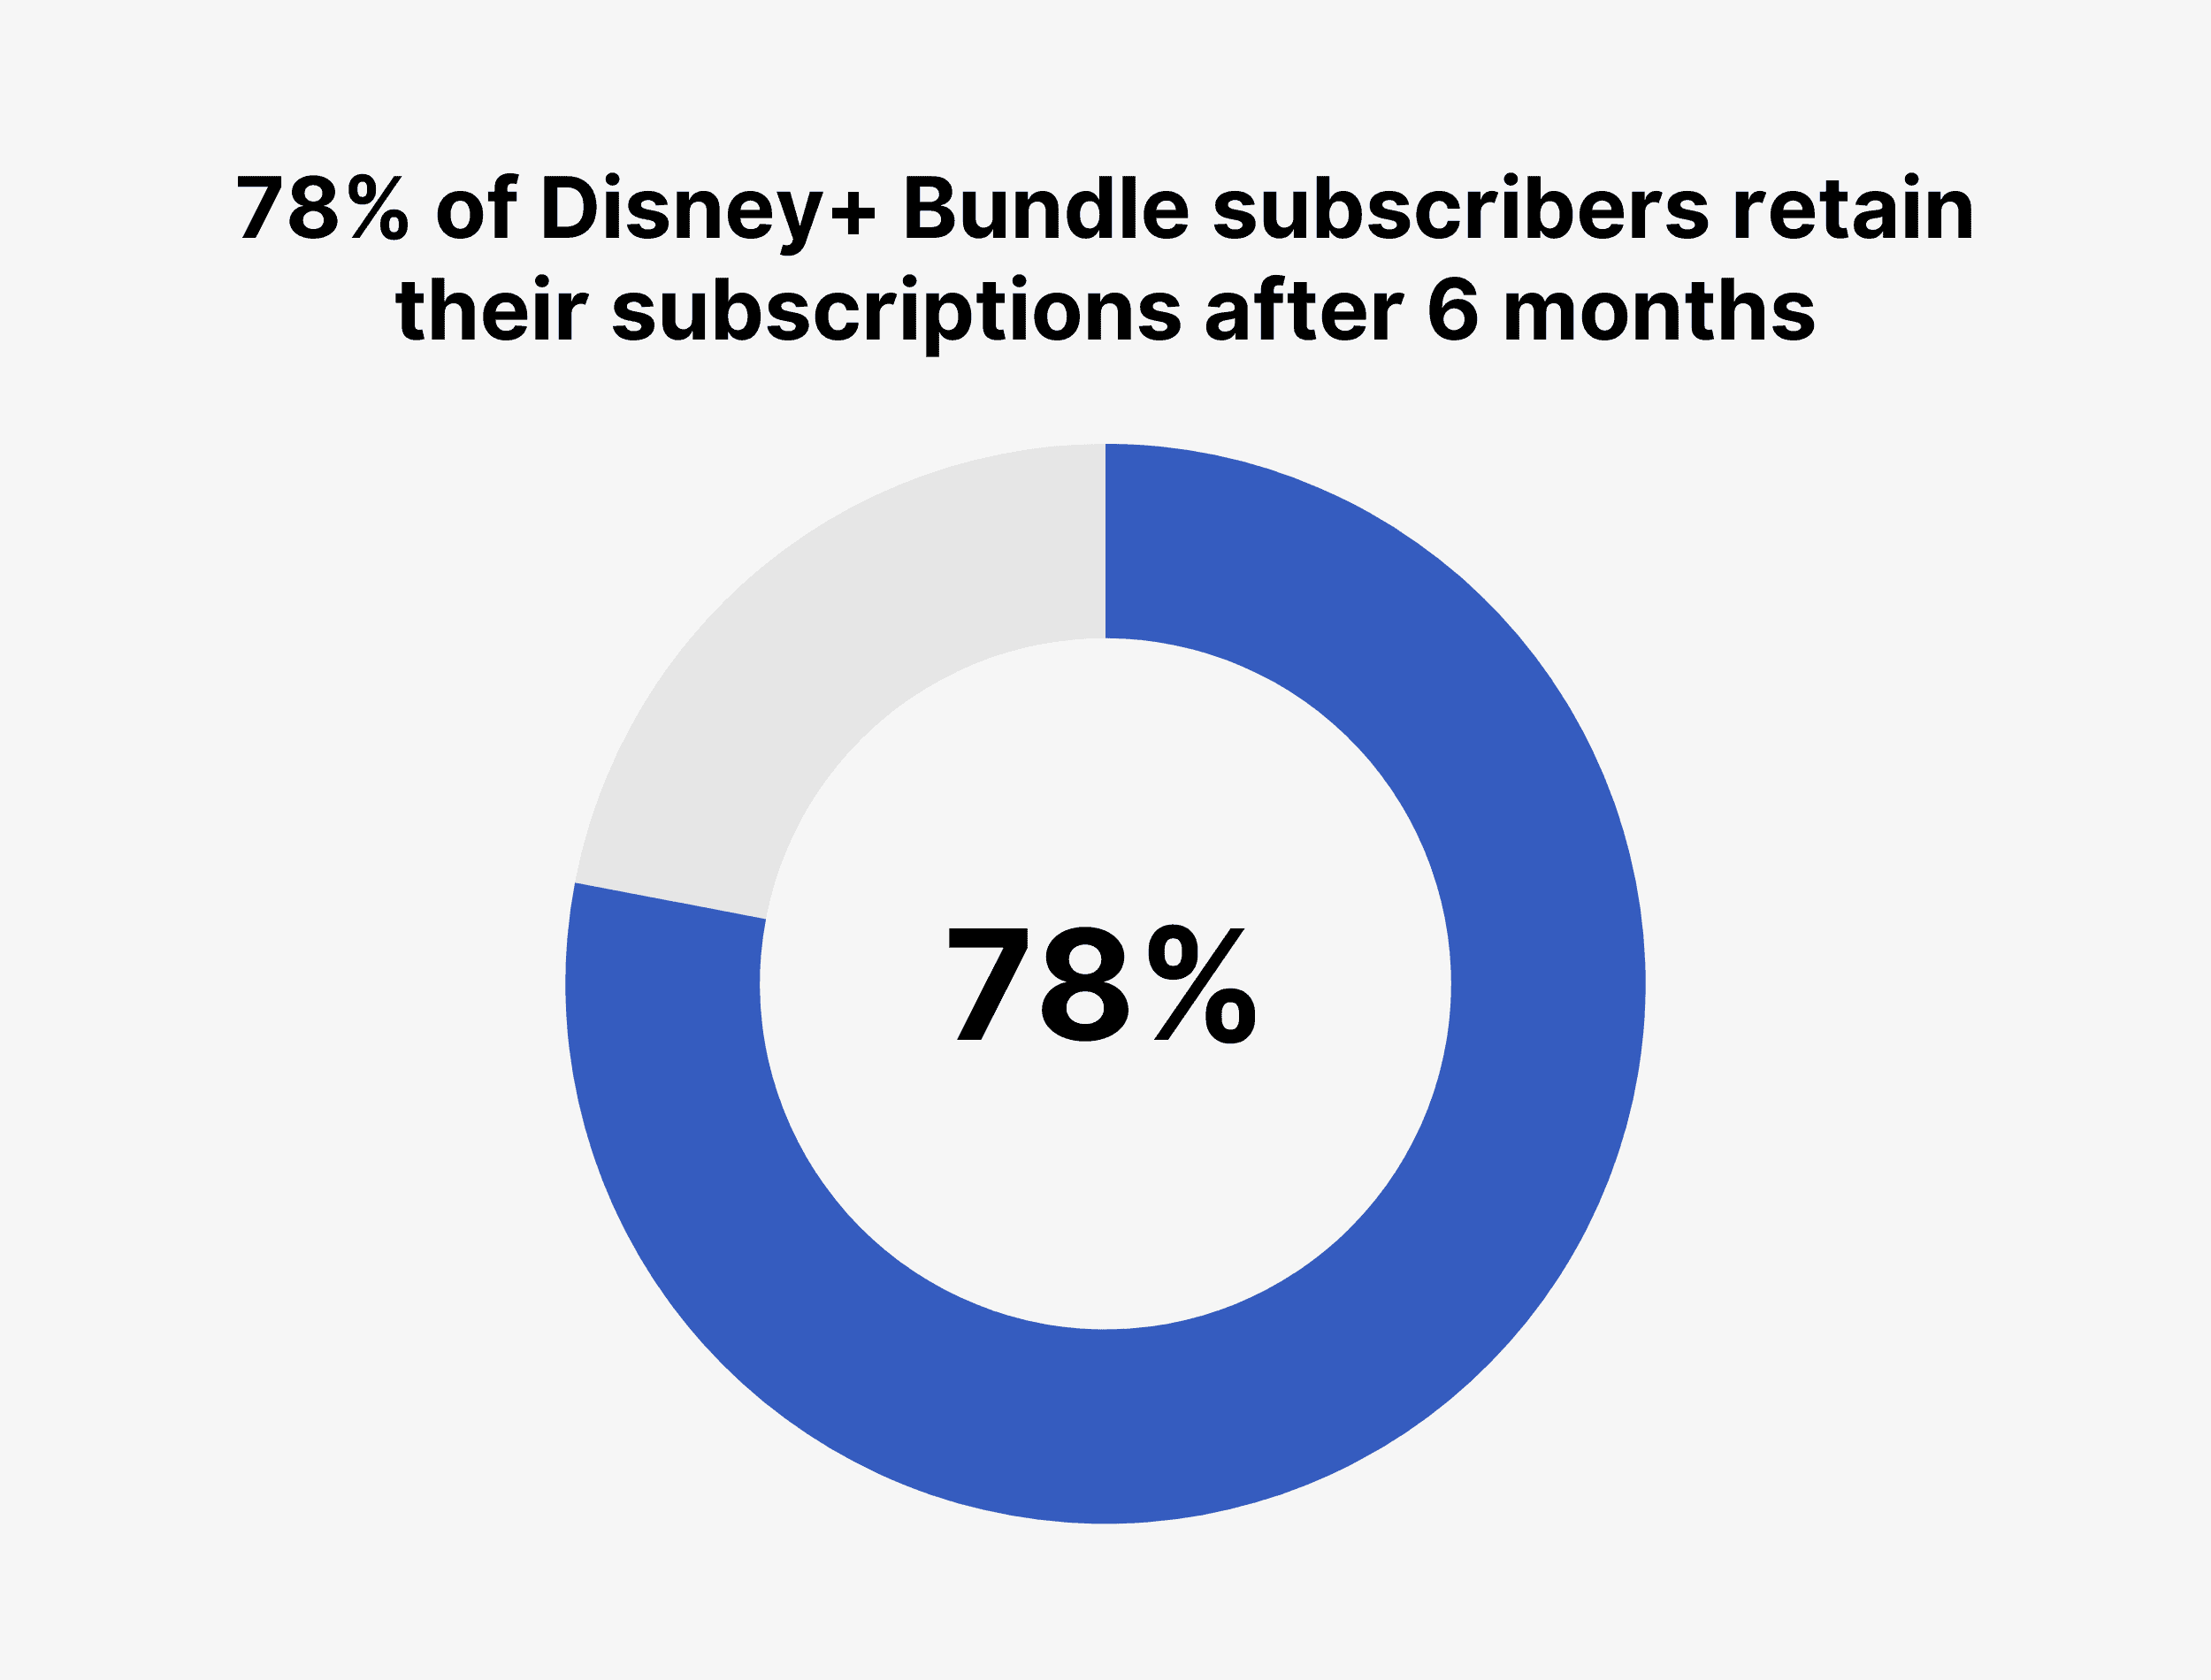 78% of Disney+ Bundle subscribers retain their subscriptions after 6 months